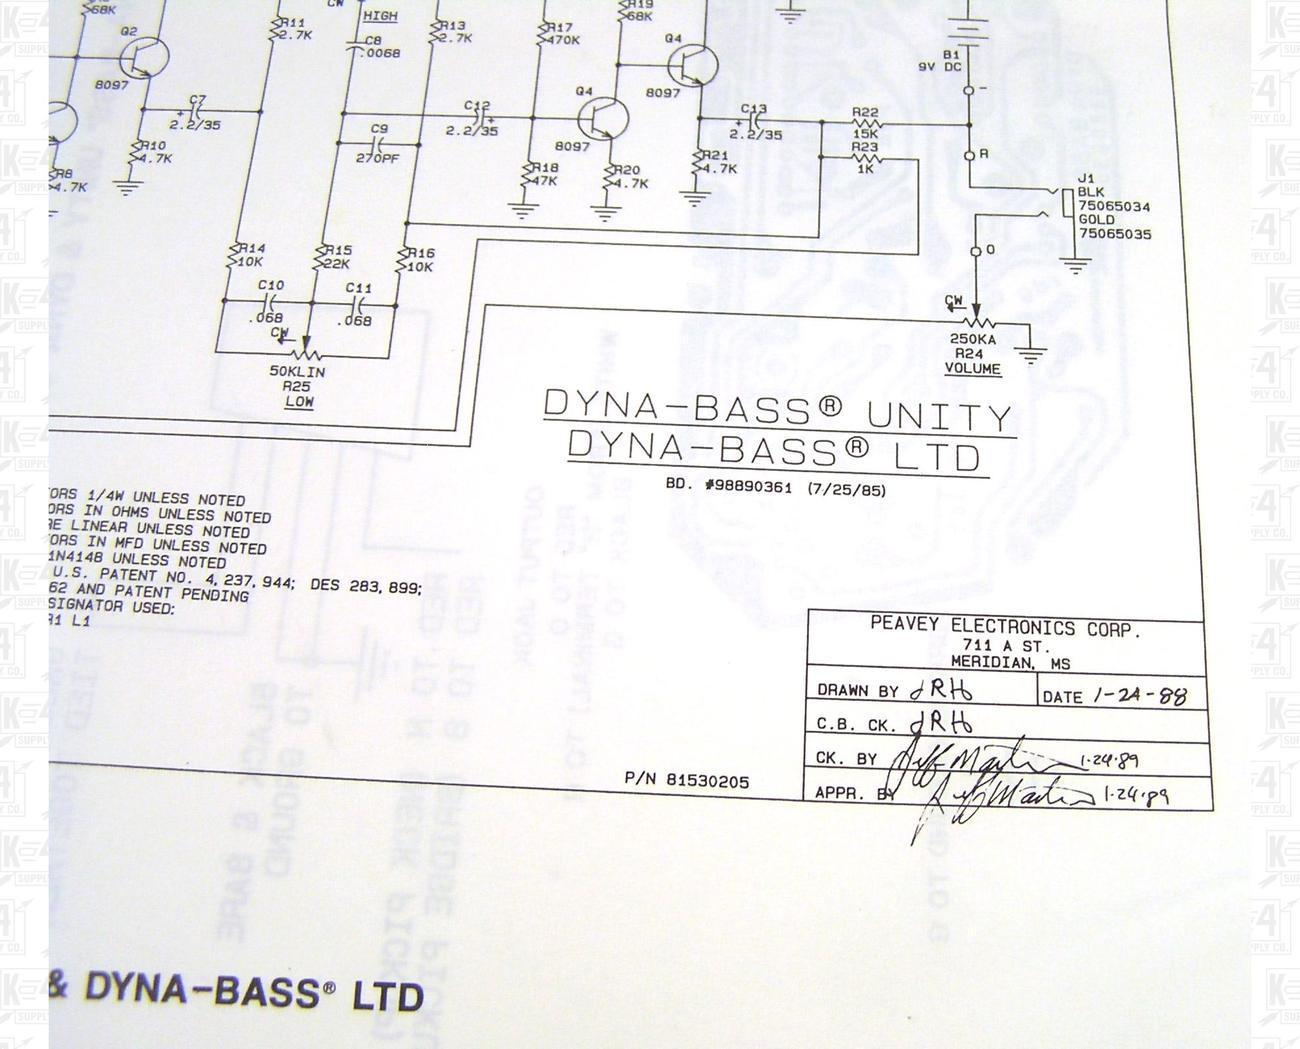 Peavey Dynabass Schematic http://www.bonanza.com/listings/Peavey-Dyna-Bass-Unity-LTD-Preamp-Schematic-and-Diagram/25101869